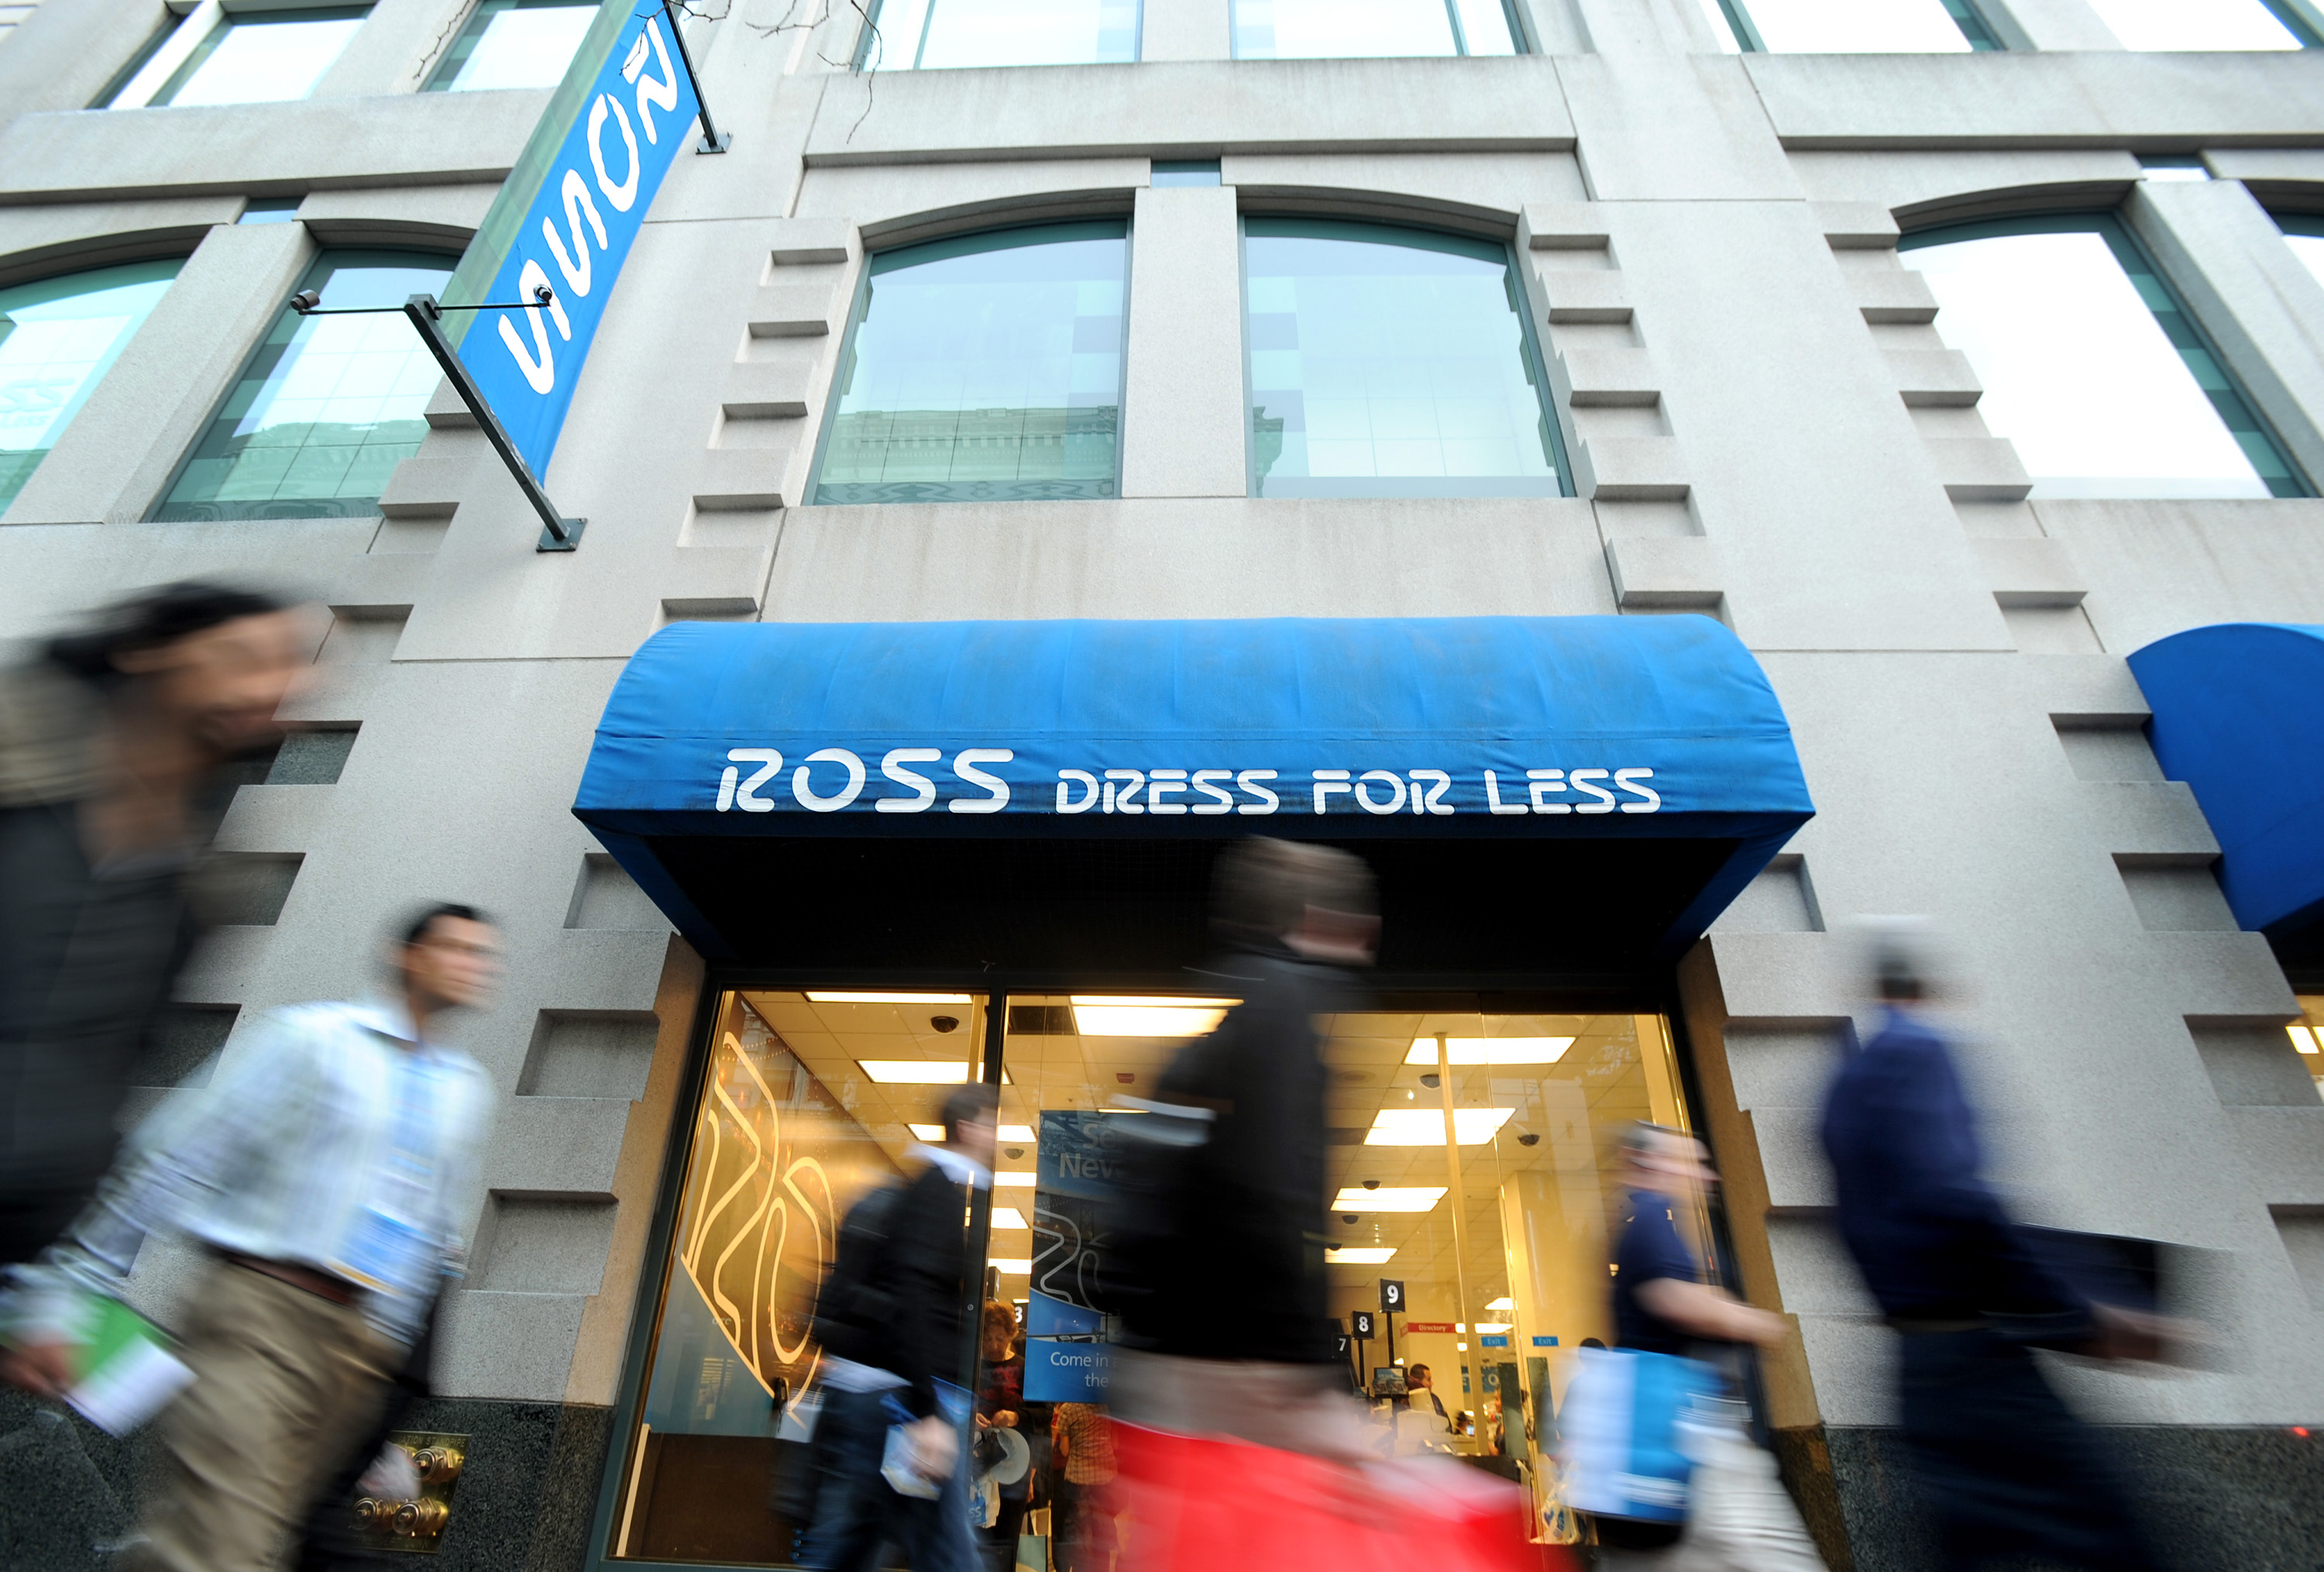 Ross's 60%-Off Nikes Set to Overtake Gap With Thrifty Customers